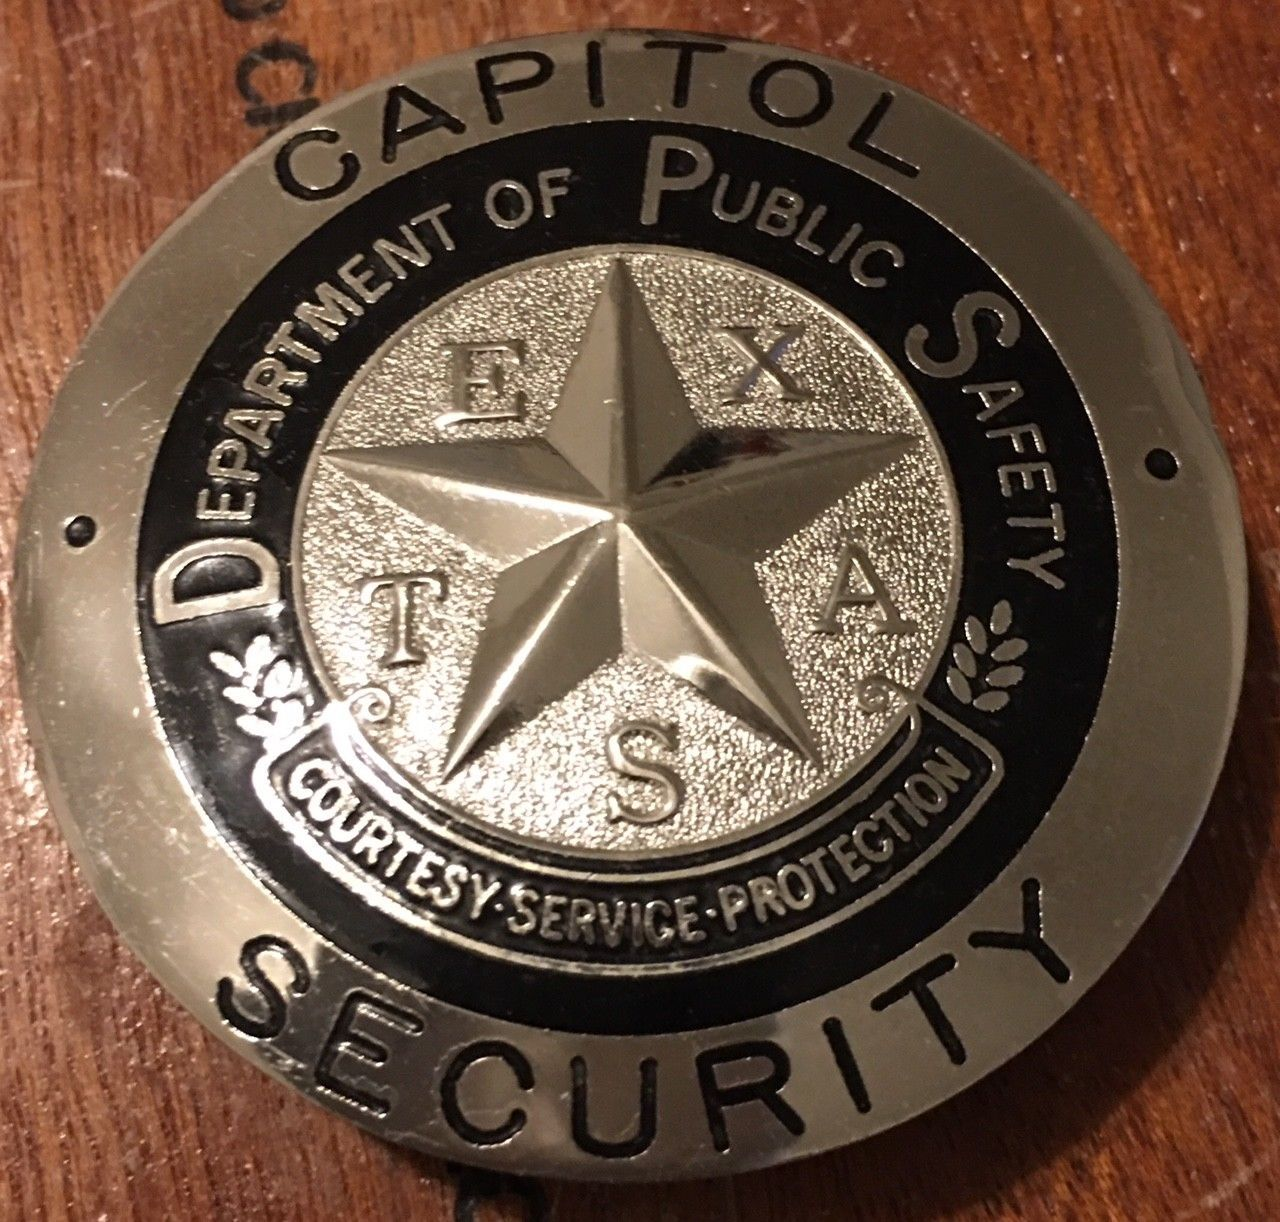 Capitol Security, Department of Public Safety, Texas